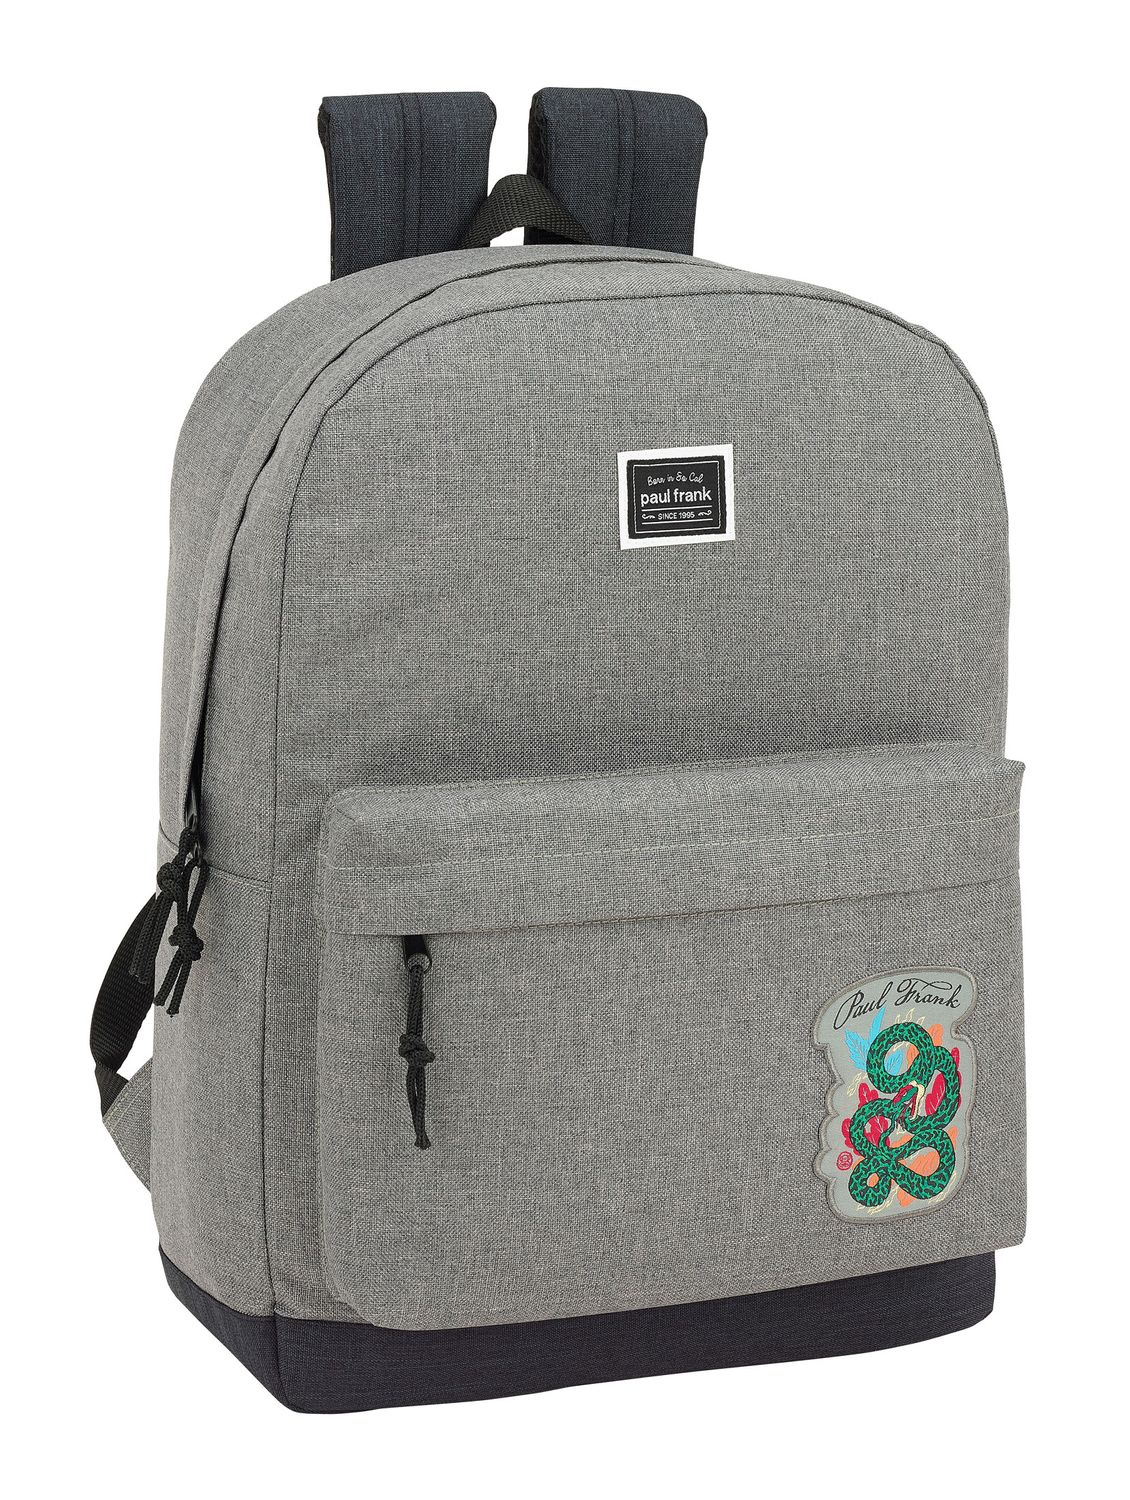 Paul Frank Jungle Laptop Backpack 15.6'